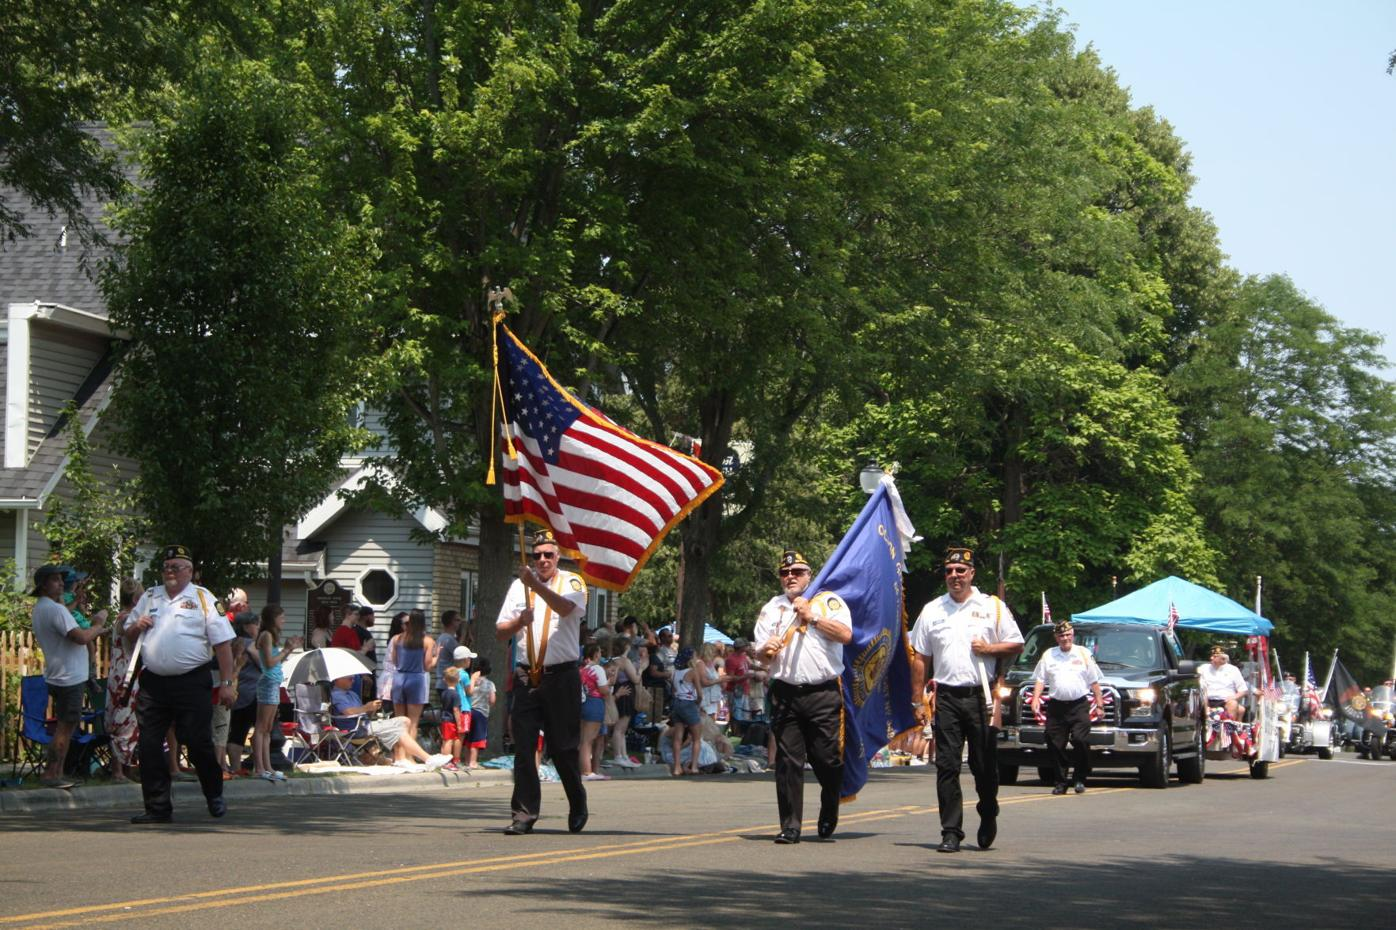 DeForest 4th of July Parade 2021